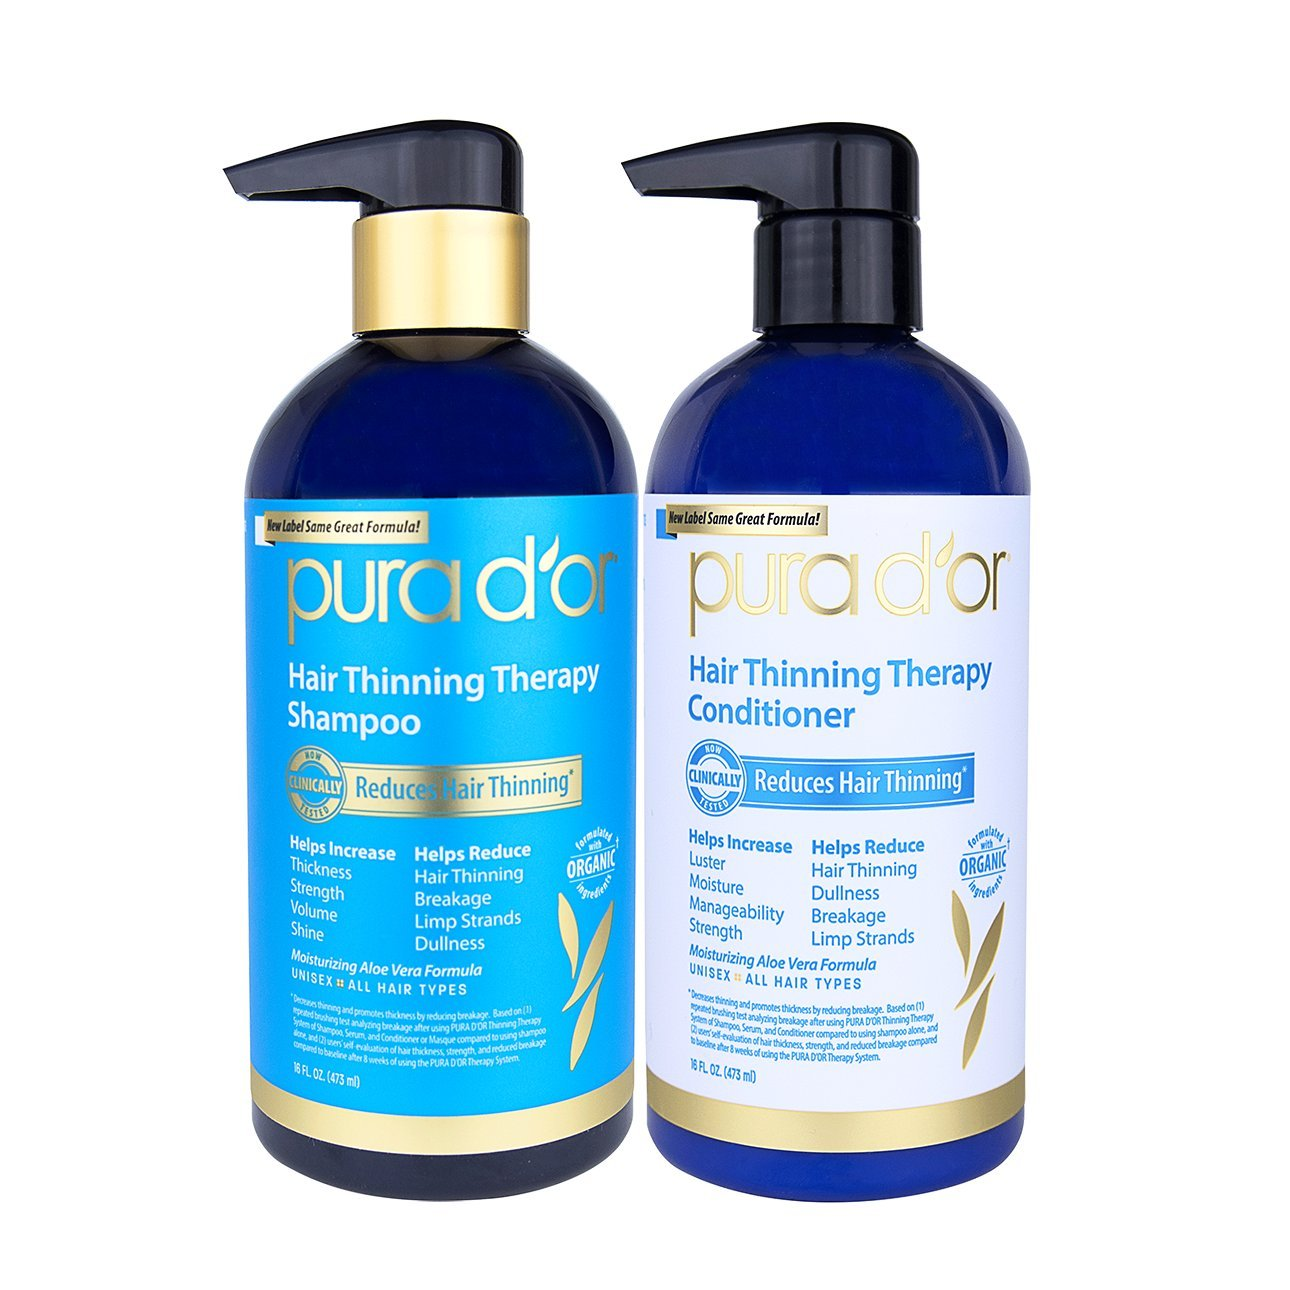 PURA D'OR Hair Thinning Therapy Shampoo VANILLA LAVENDER for Prevention, Infused with Organic Argan Oil, Biotin & Natural Ingredients, for All Hair Types, Men and Women, 16 Fl Oz (Packaging may vary)